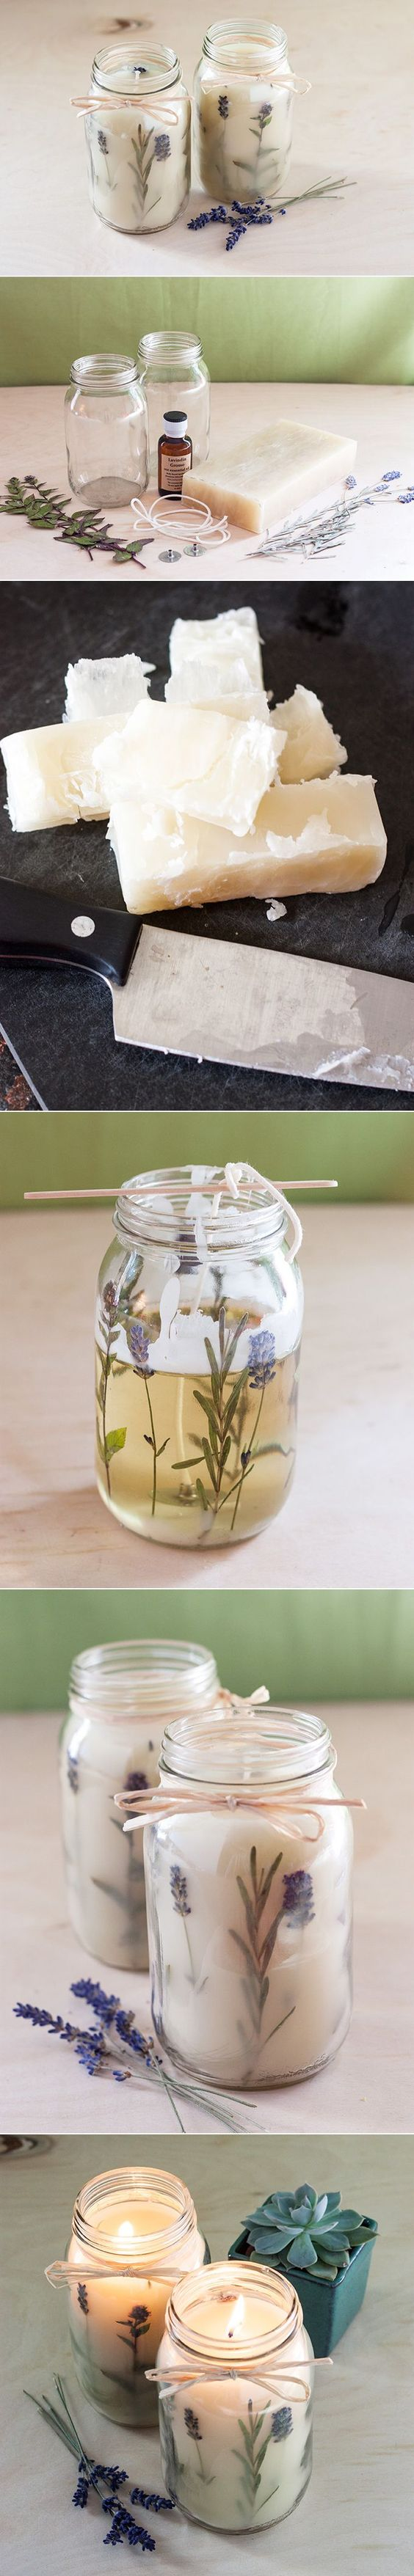 DIY - HERB CANDLE ( CLICK THROUGH FOR TUTORIAL ) >> YOU WILL NEED : GLASS JAR , A BLOCK OF BEESWAX (I USED A 1/2 BLOCKS TO MAKE TWO CANDELS) , WICK , PRESSED FLOWERS OR HERBS (100% DRY) , CLEAN EMPTY TIN CAN AND A SAUCEPAN , A OLD PAINTBRUSH (YOU CAN THROW AWAY AFTERWARDS) , AN OLD KNIFE , CUTTING BOARD